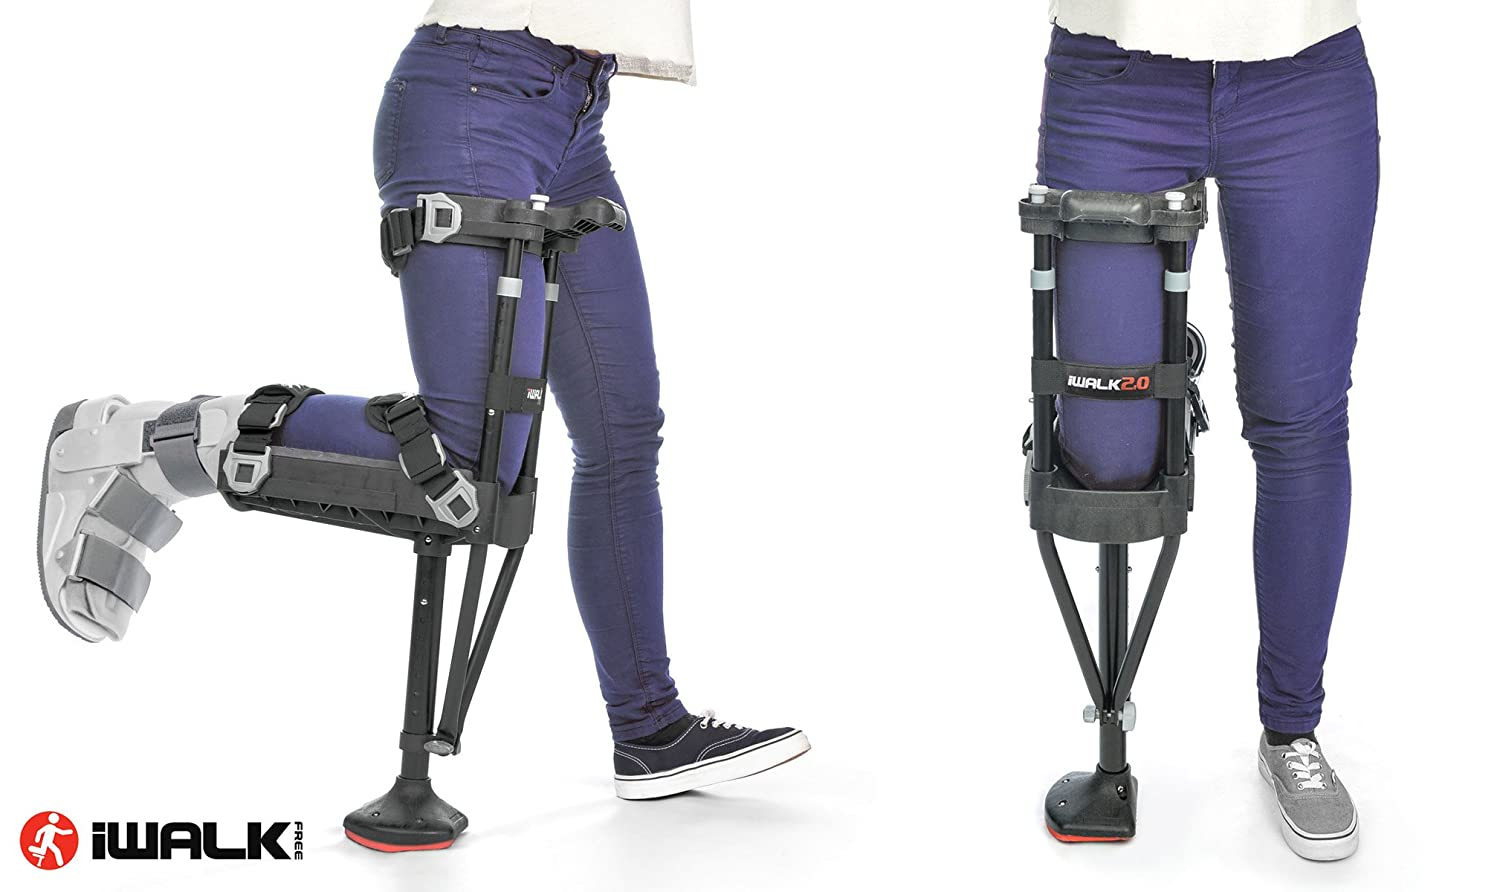 iWALK2 0 Hands Free Knee Crutch - Alternative for Crutches and Knee  Scooters - by iWALKFree